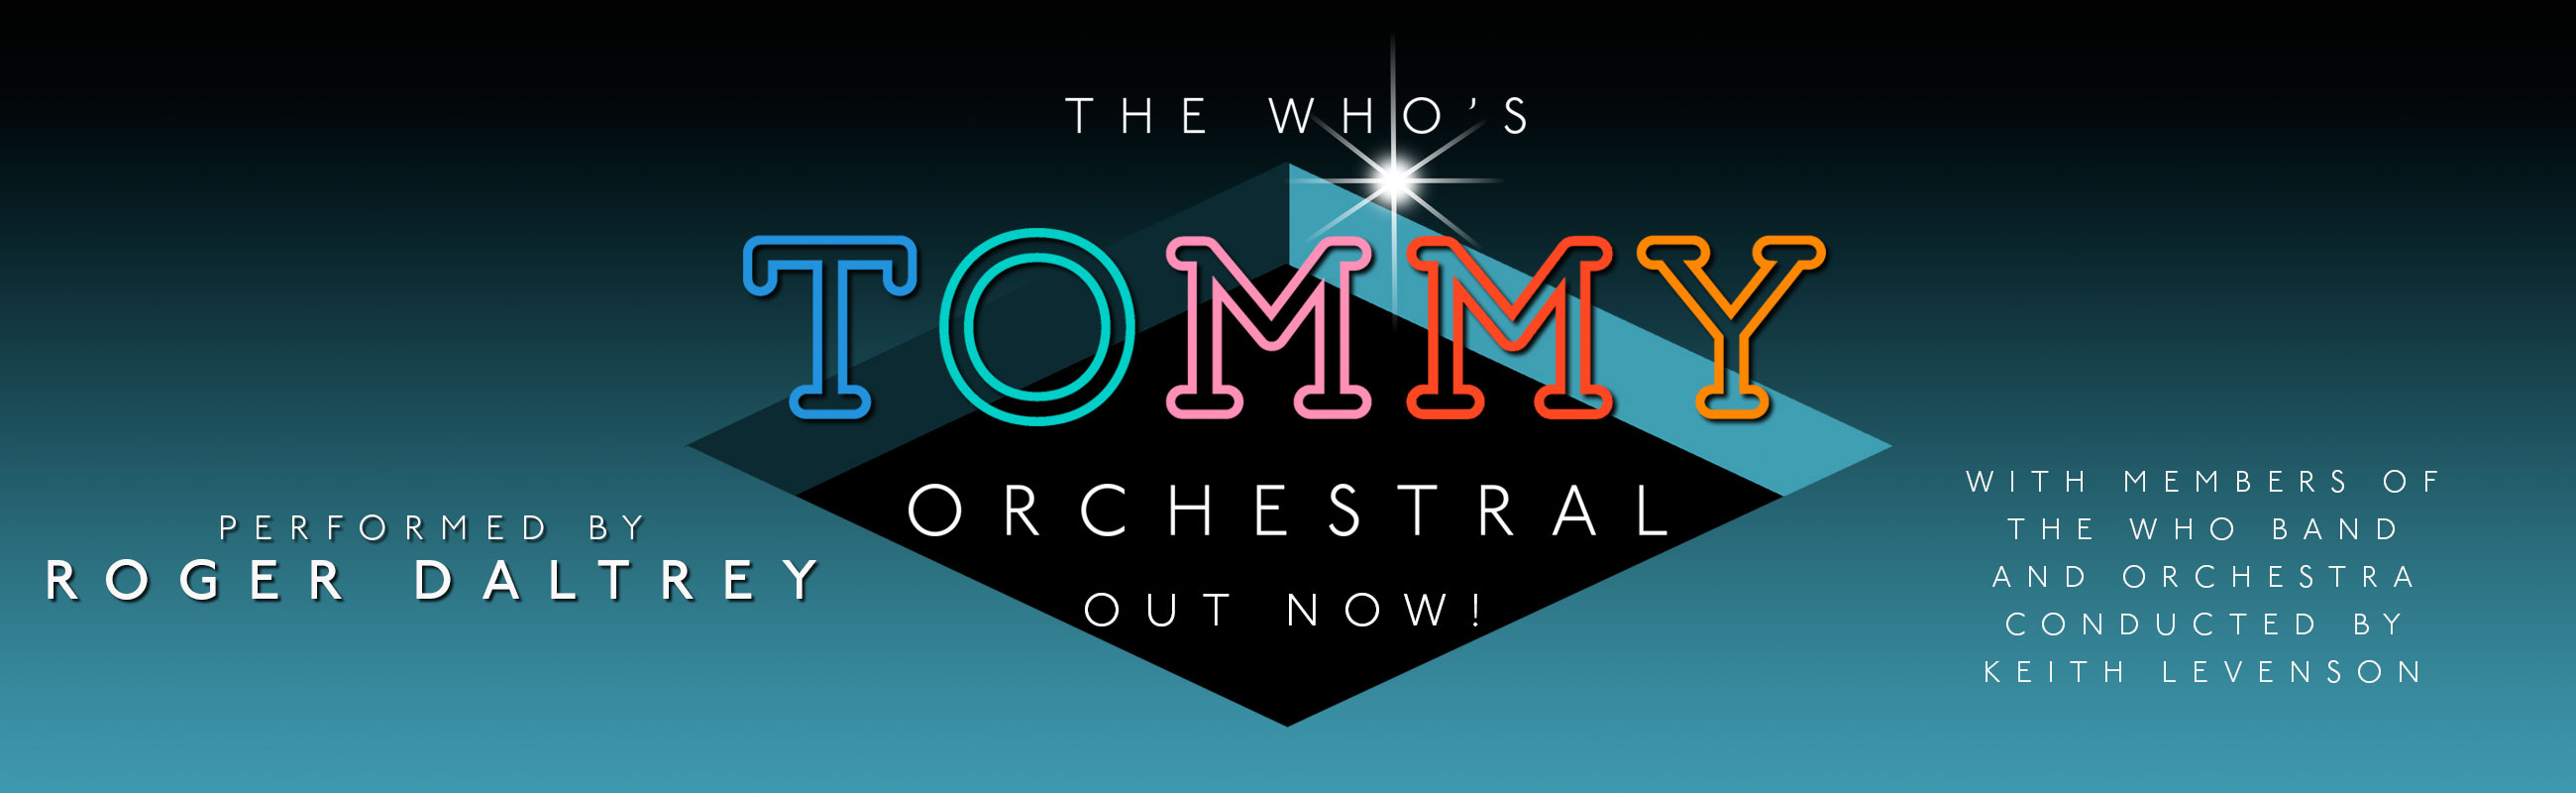 The Who - Official Site of The Who, Pete Townshend and Roger